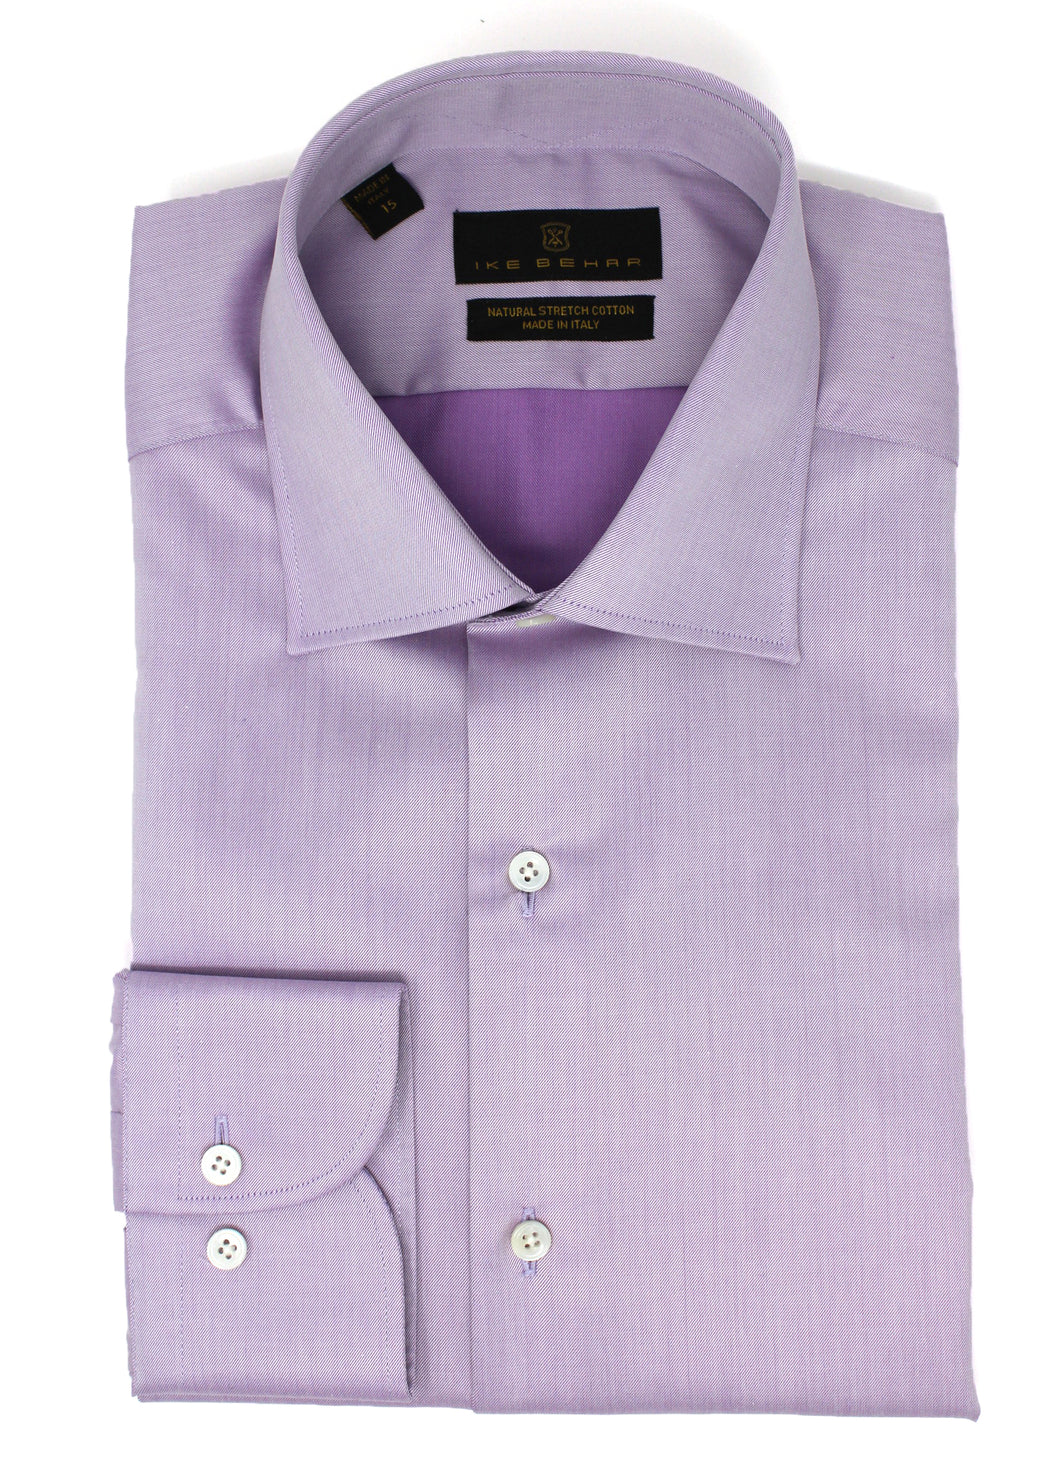 Lavender Twill Natural Stretch Cotton Dress Shirt